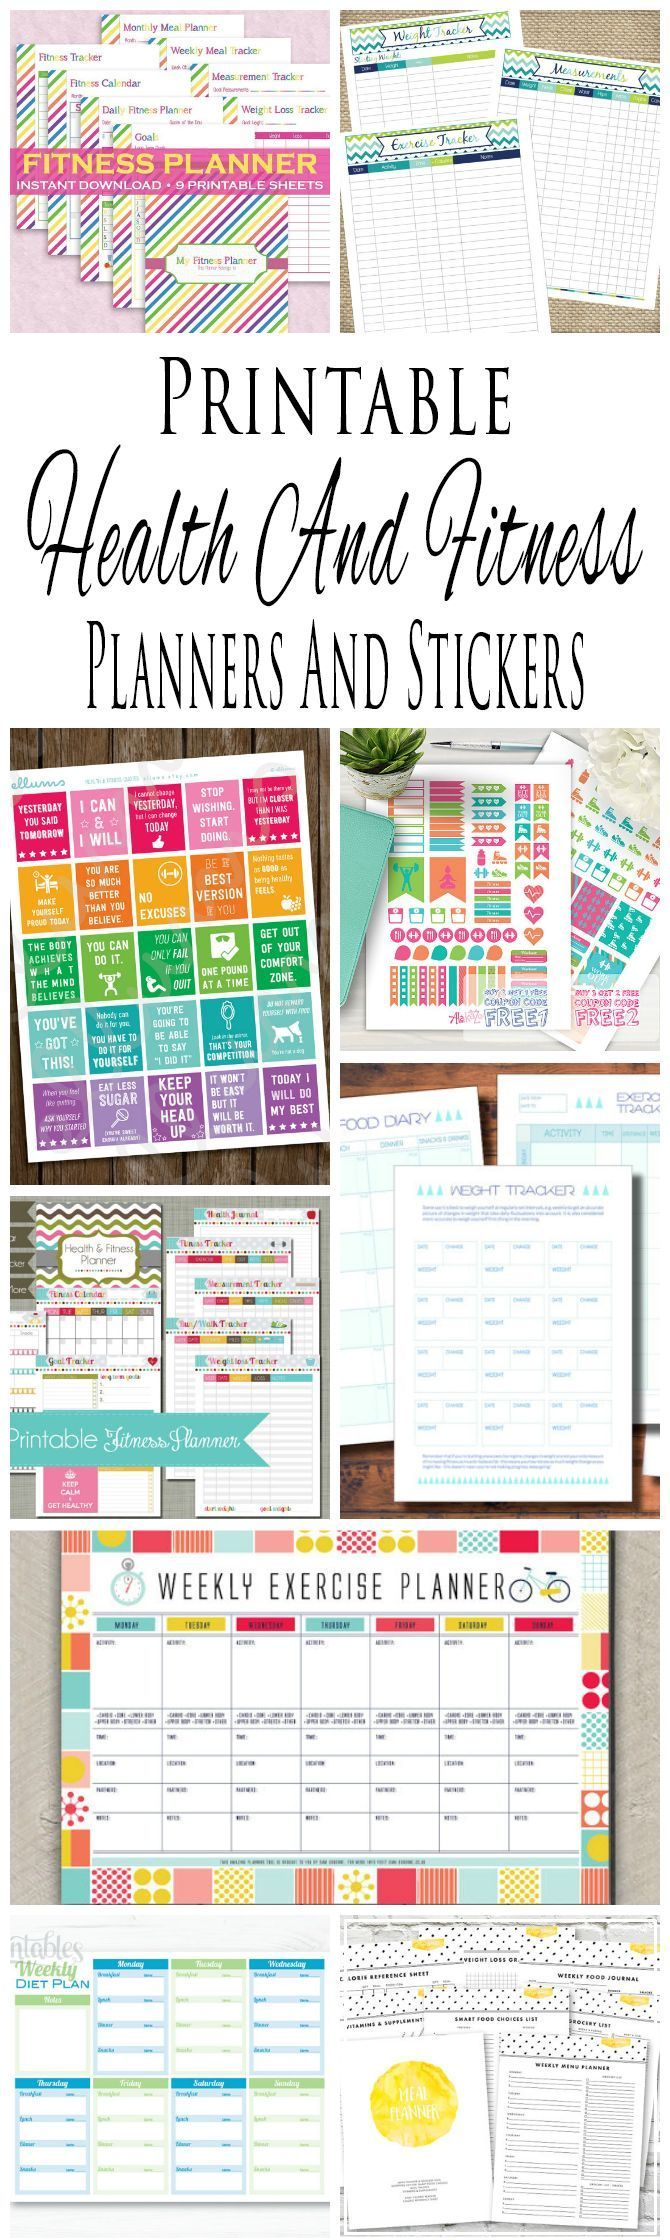 Health And Fitness Planners And Printable Planner Stickers